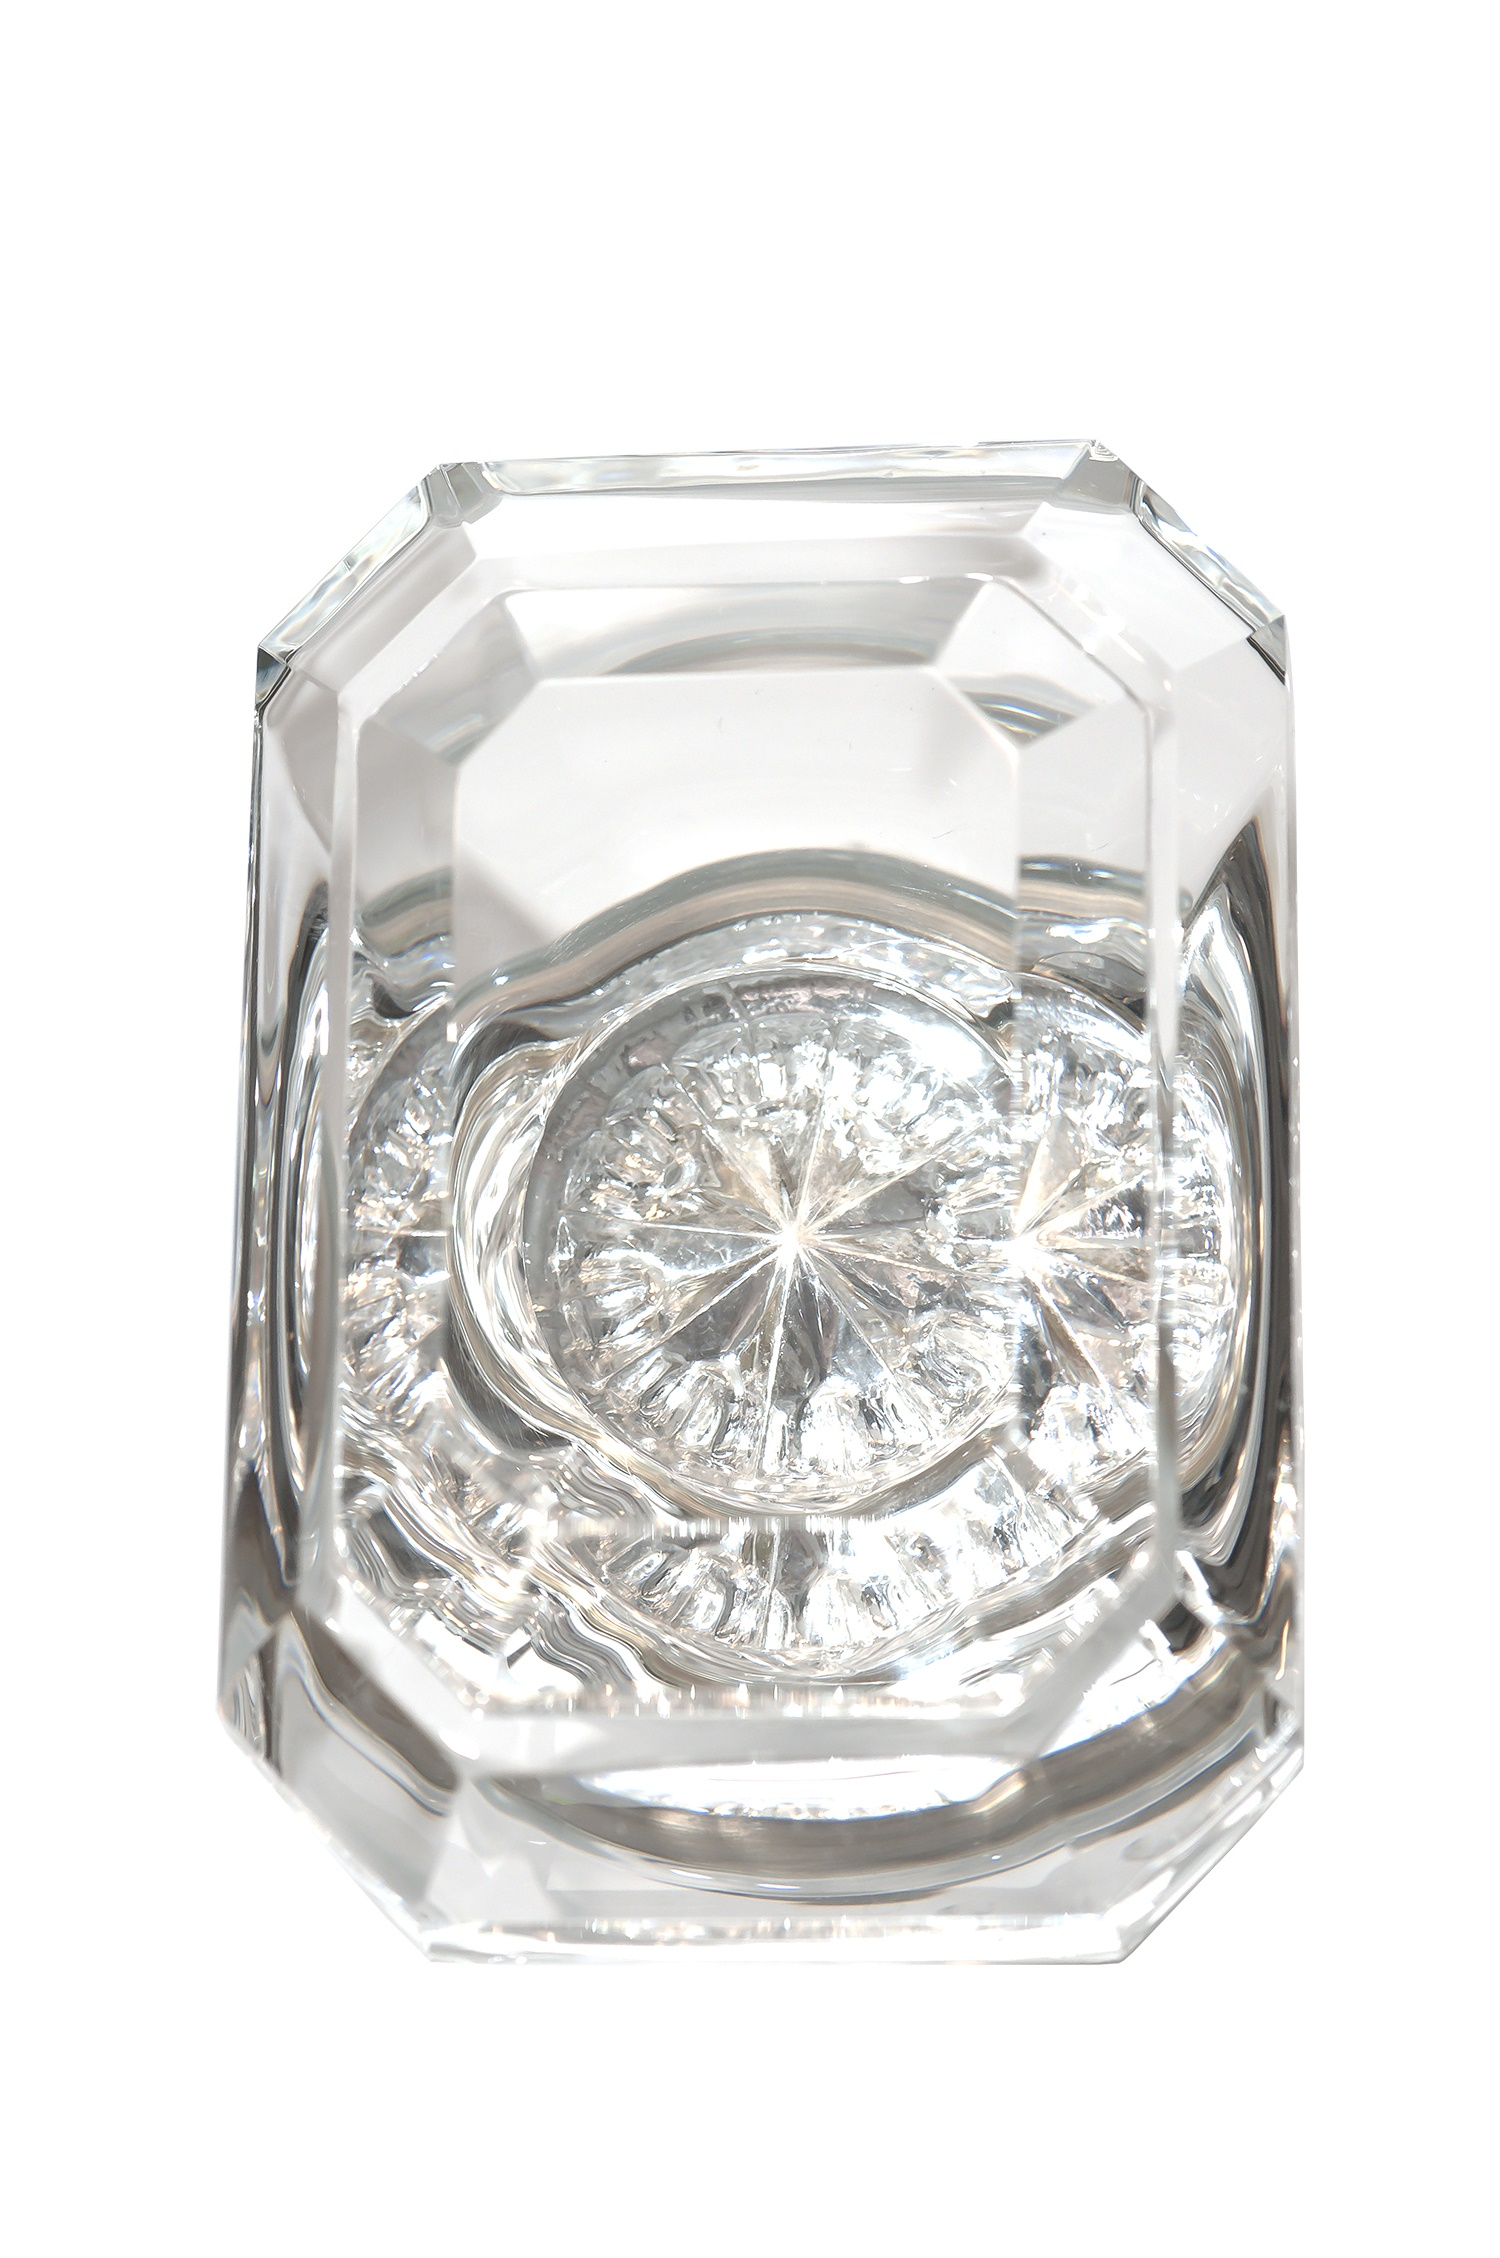 Brass Accents Andover Crystal Knob